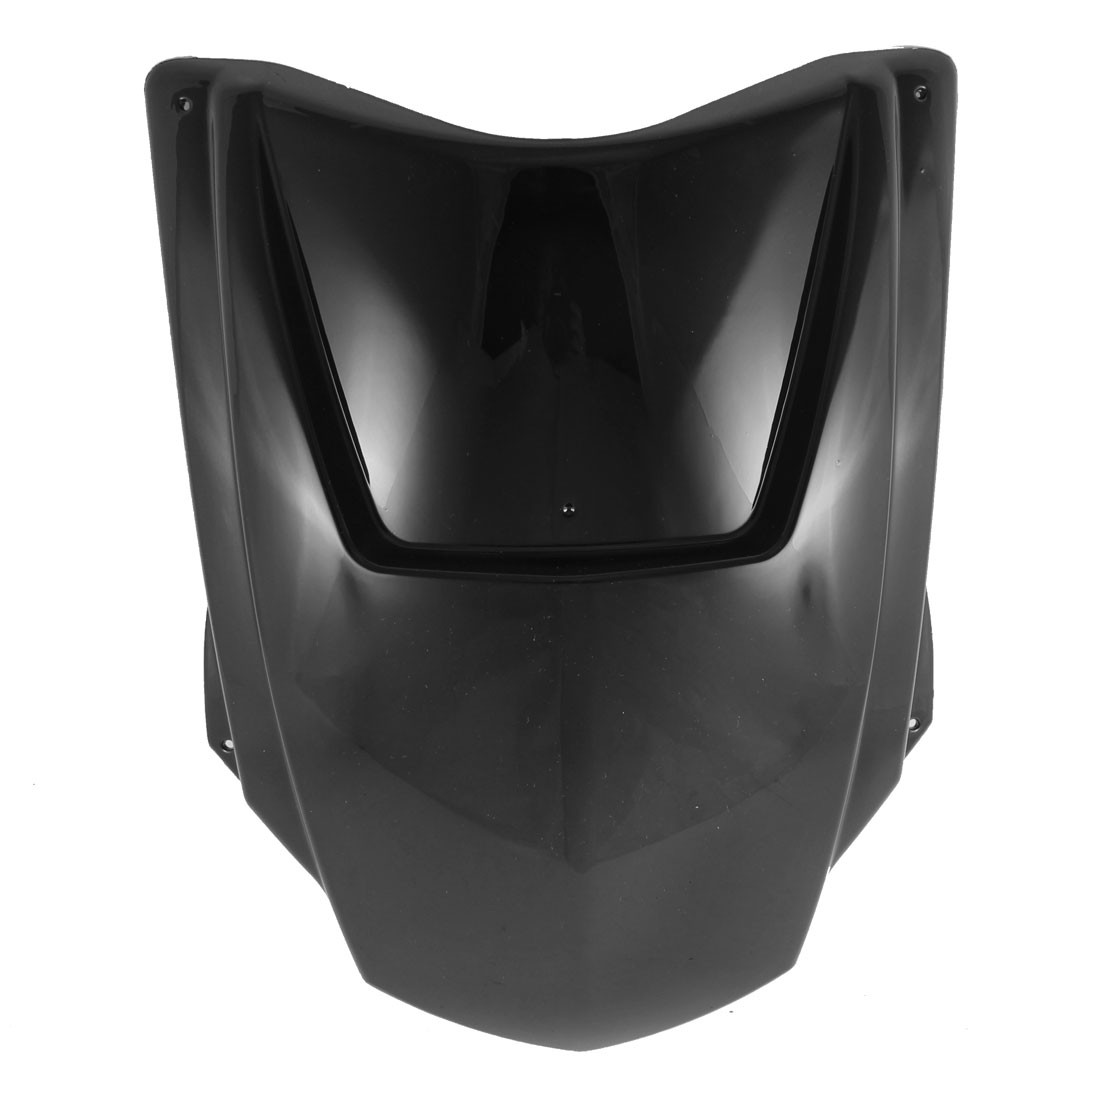 Motorcycle Scooter ABS Plastic Front Panel Cover Protector Black for BWS